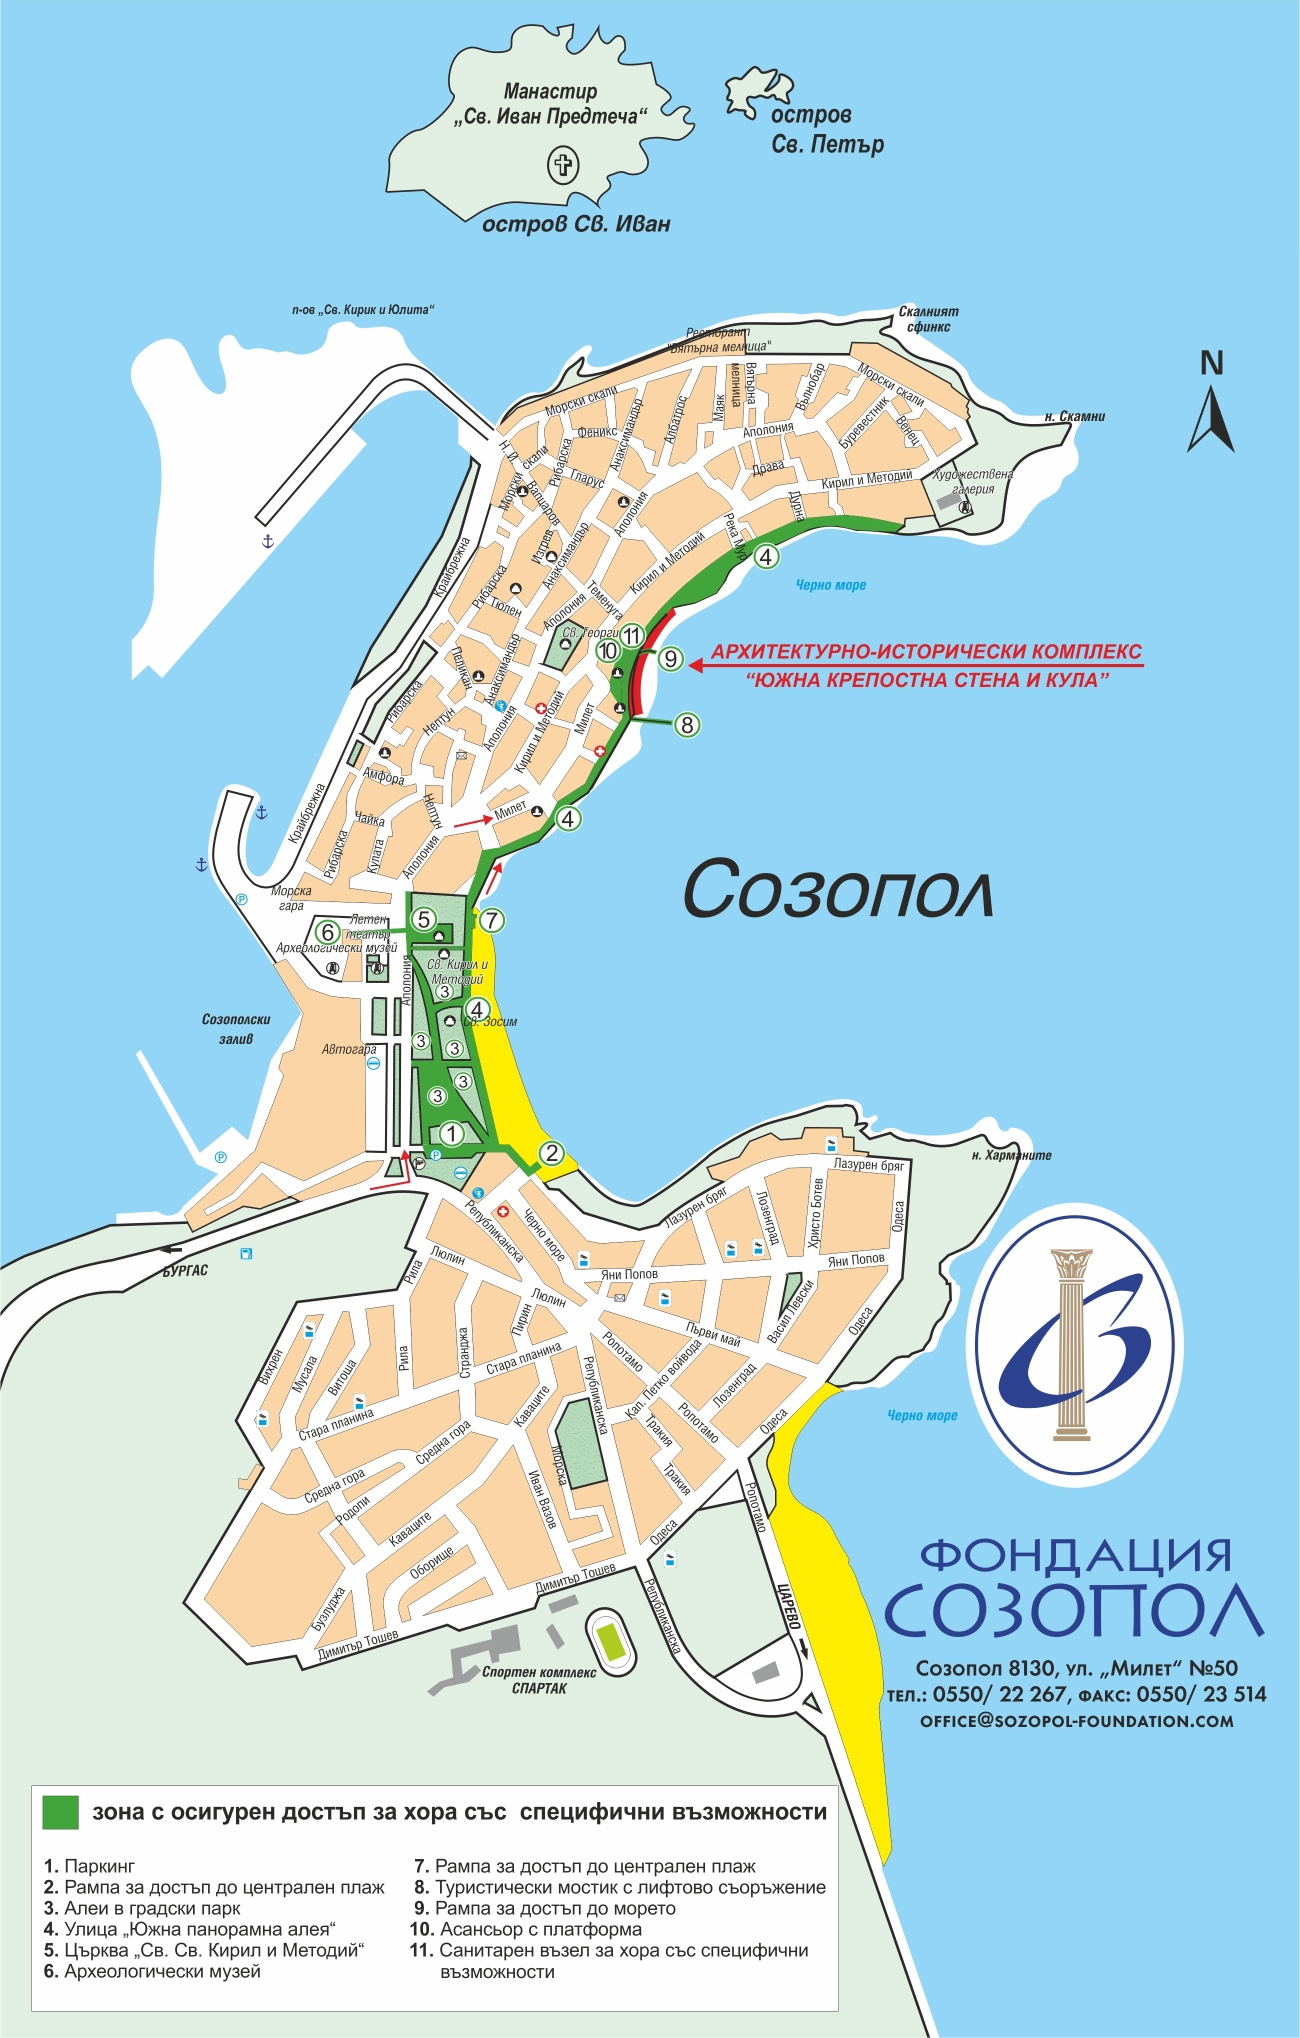 Map of the town of Sozopol